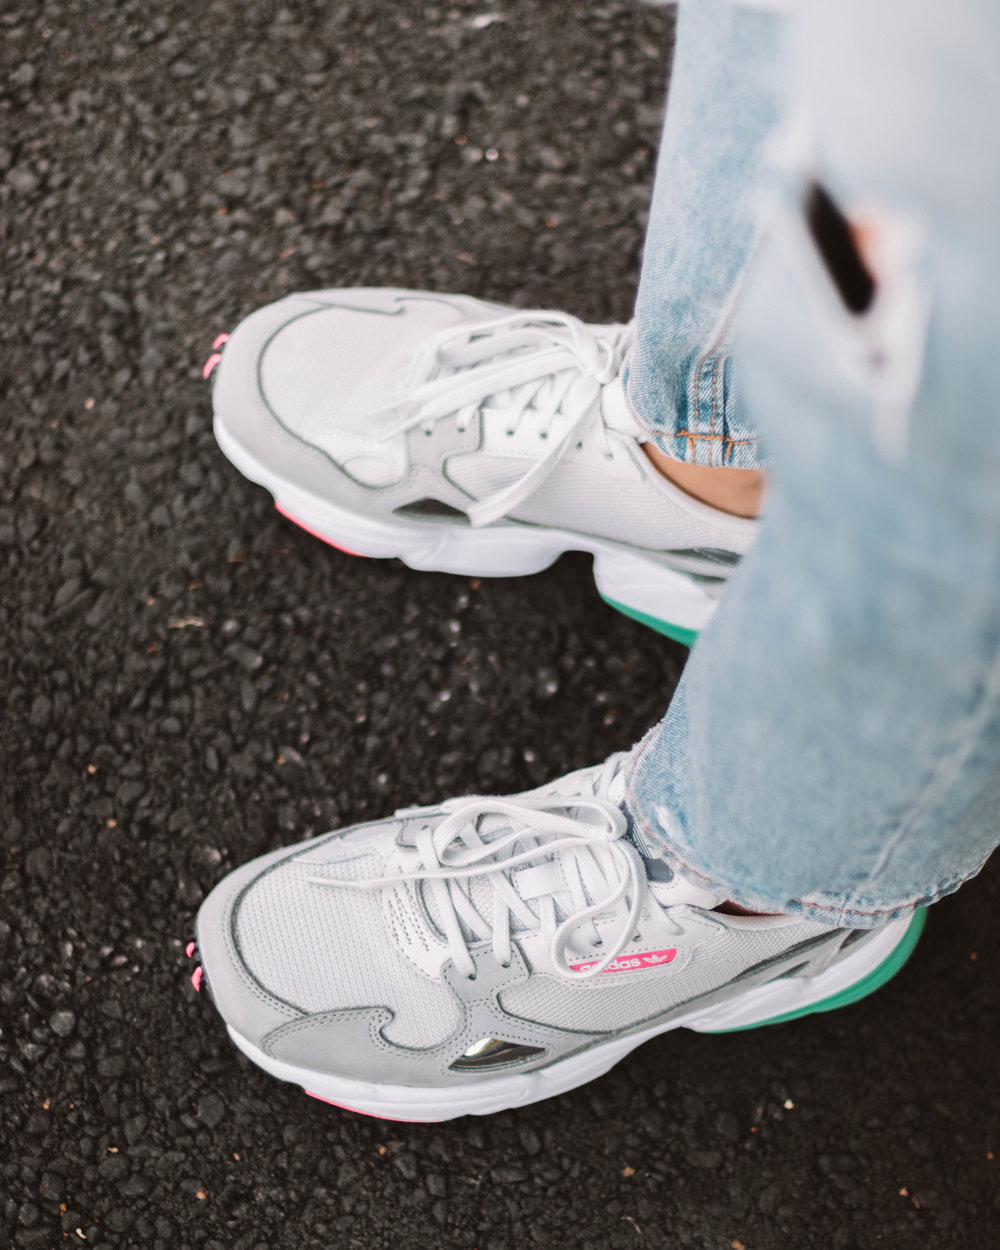 Adidas Falcon - The perfect, chunky sneakers